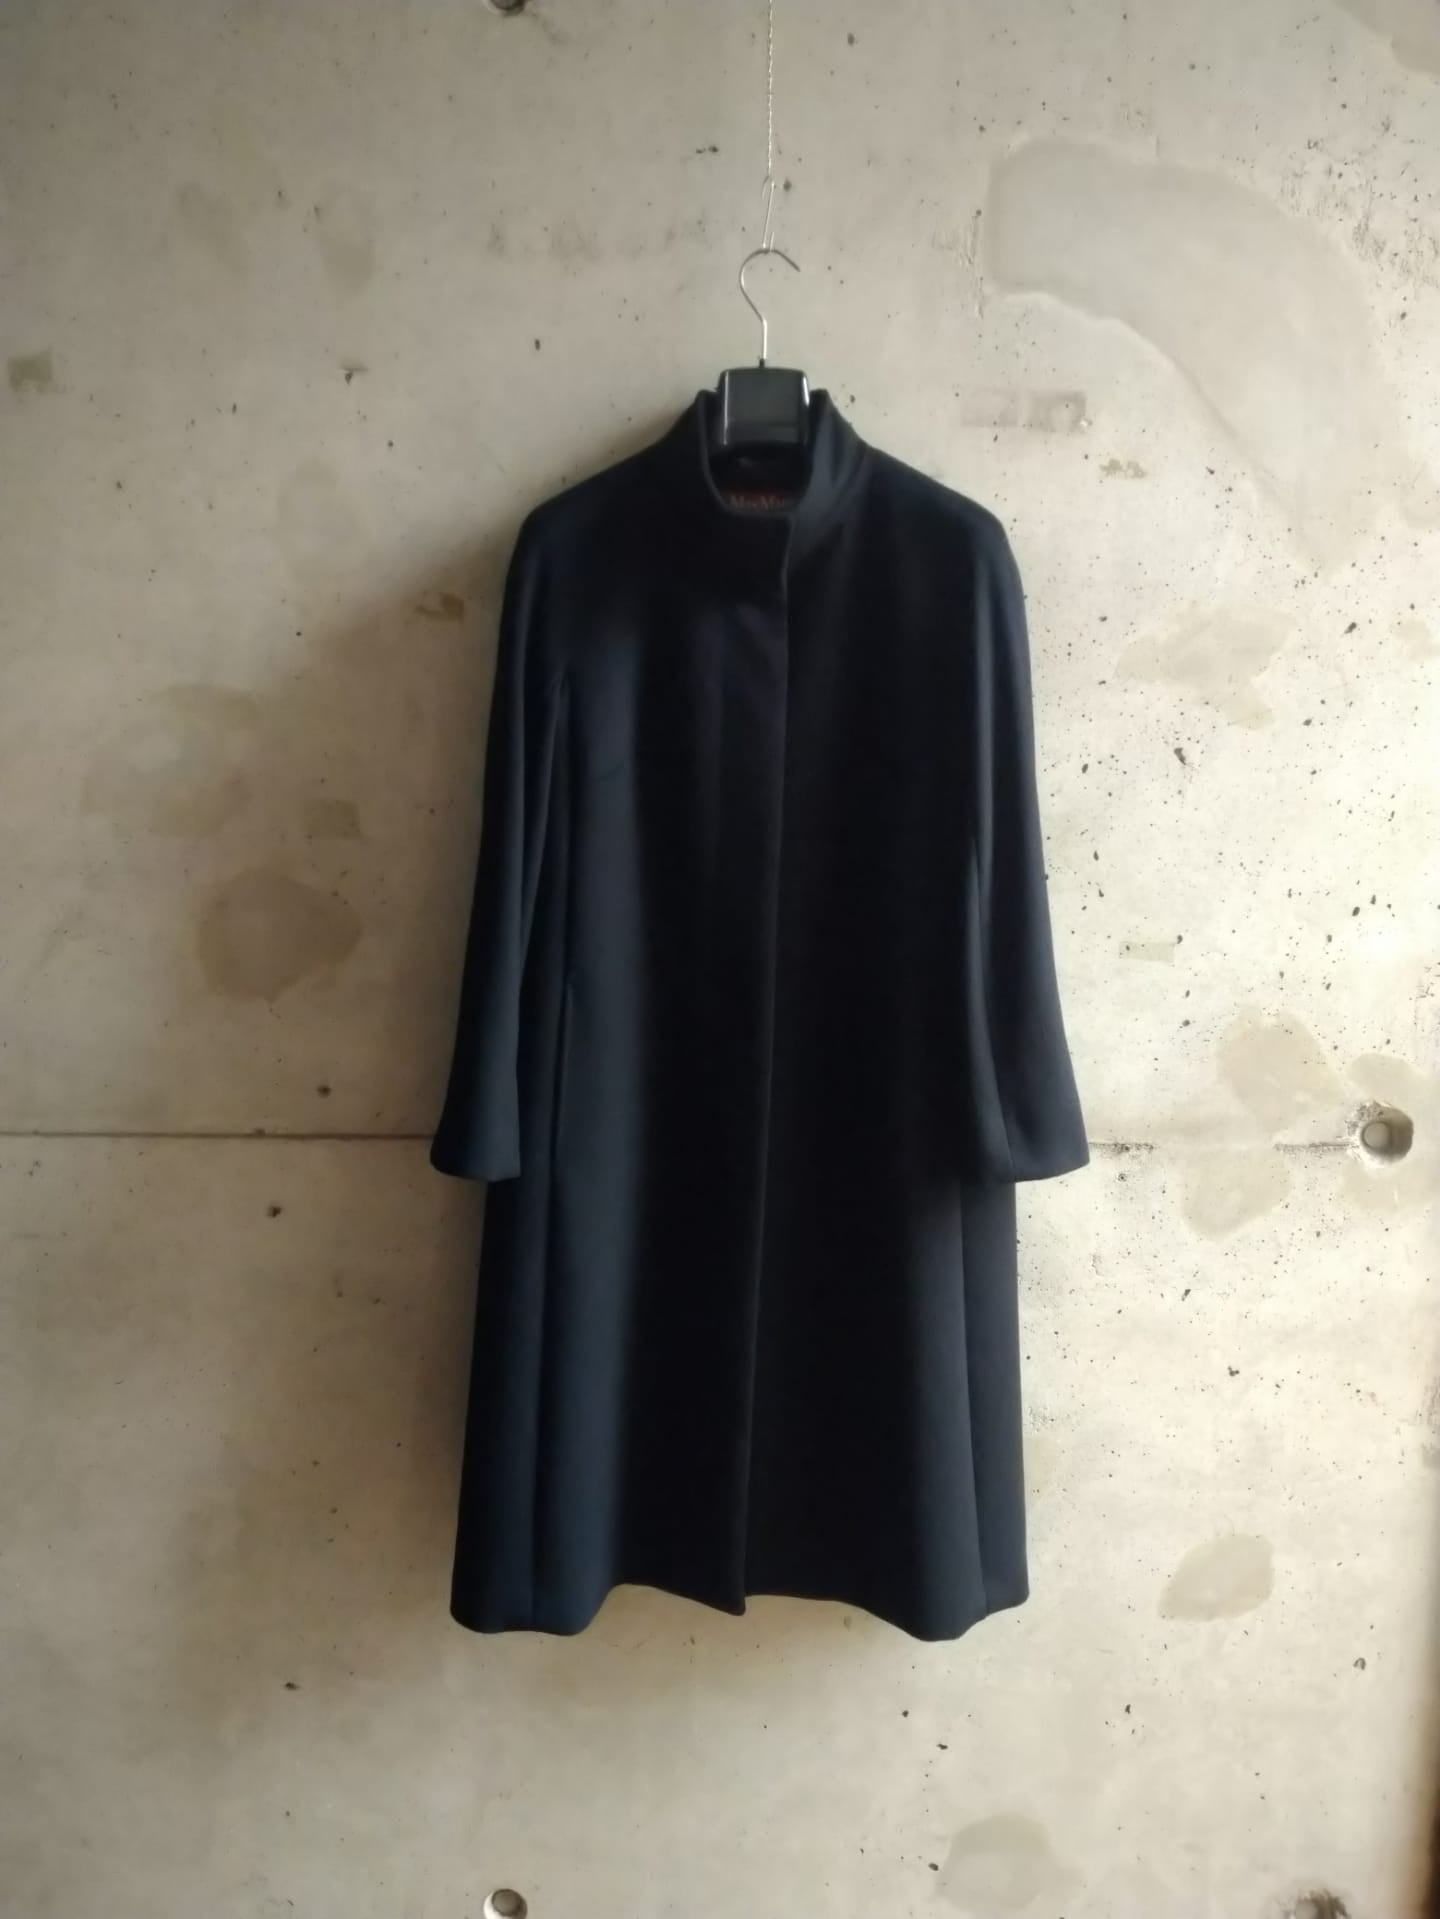 Max Mara black coat